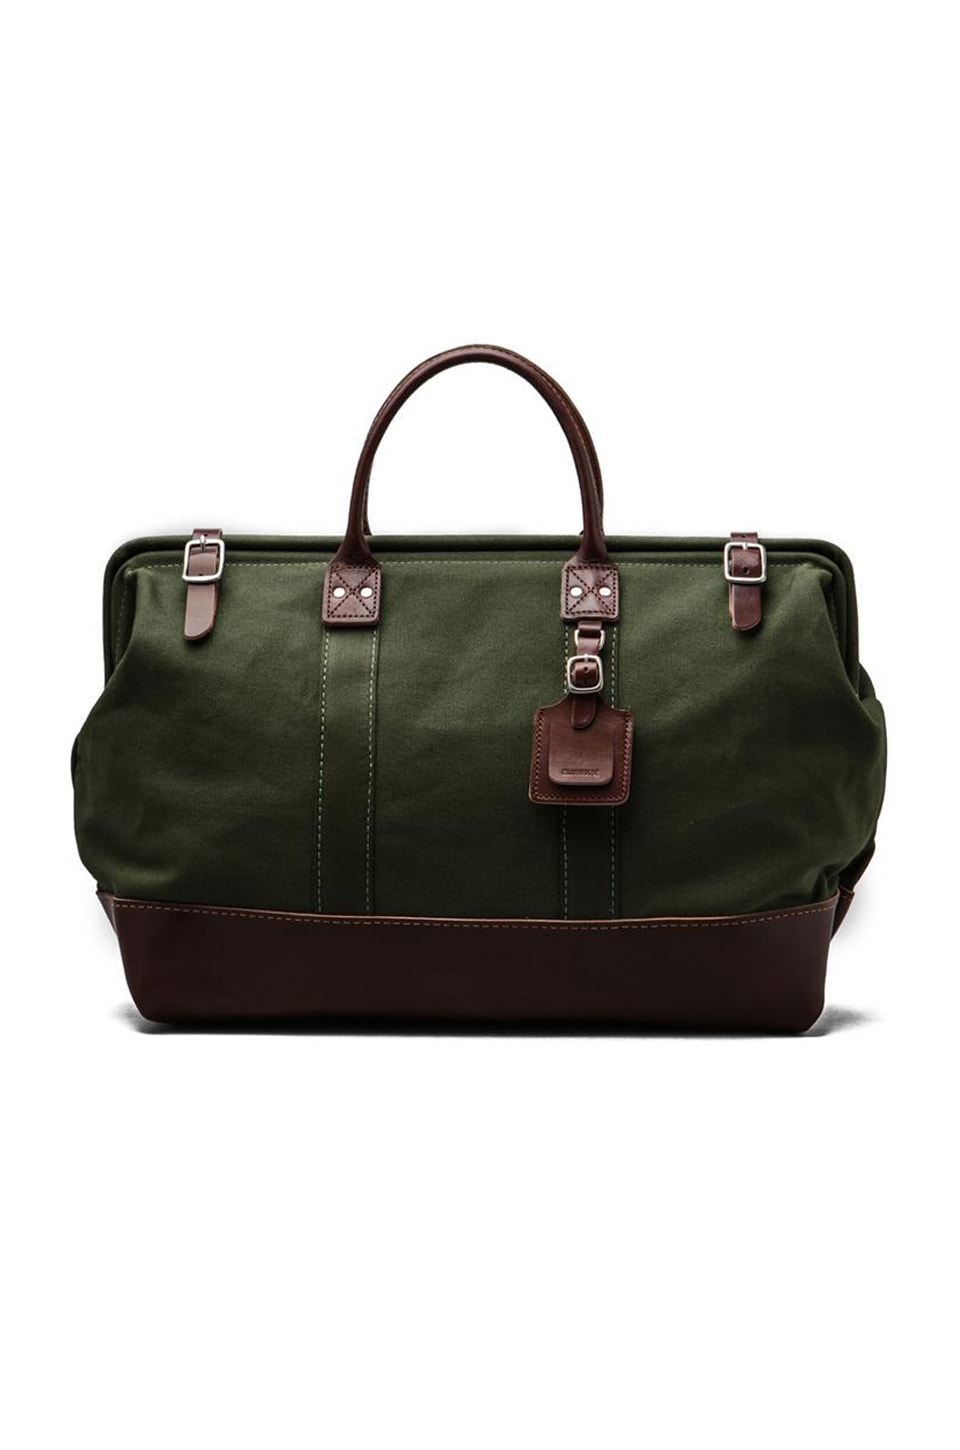 Billykirk No. 166 Large Carryall in Olive With Brown